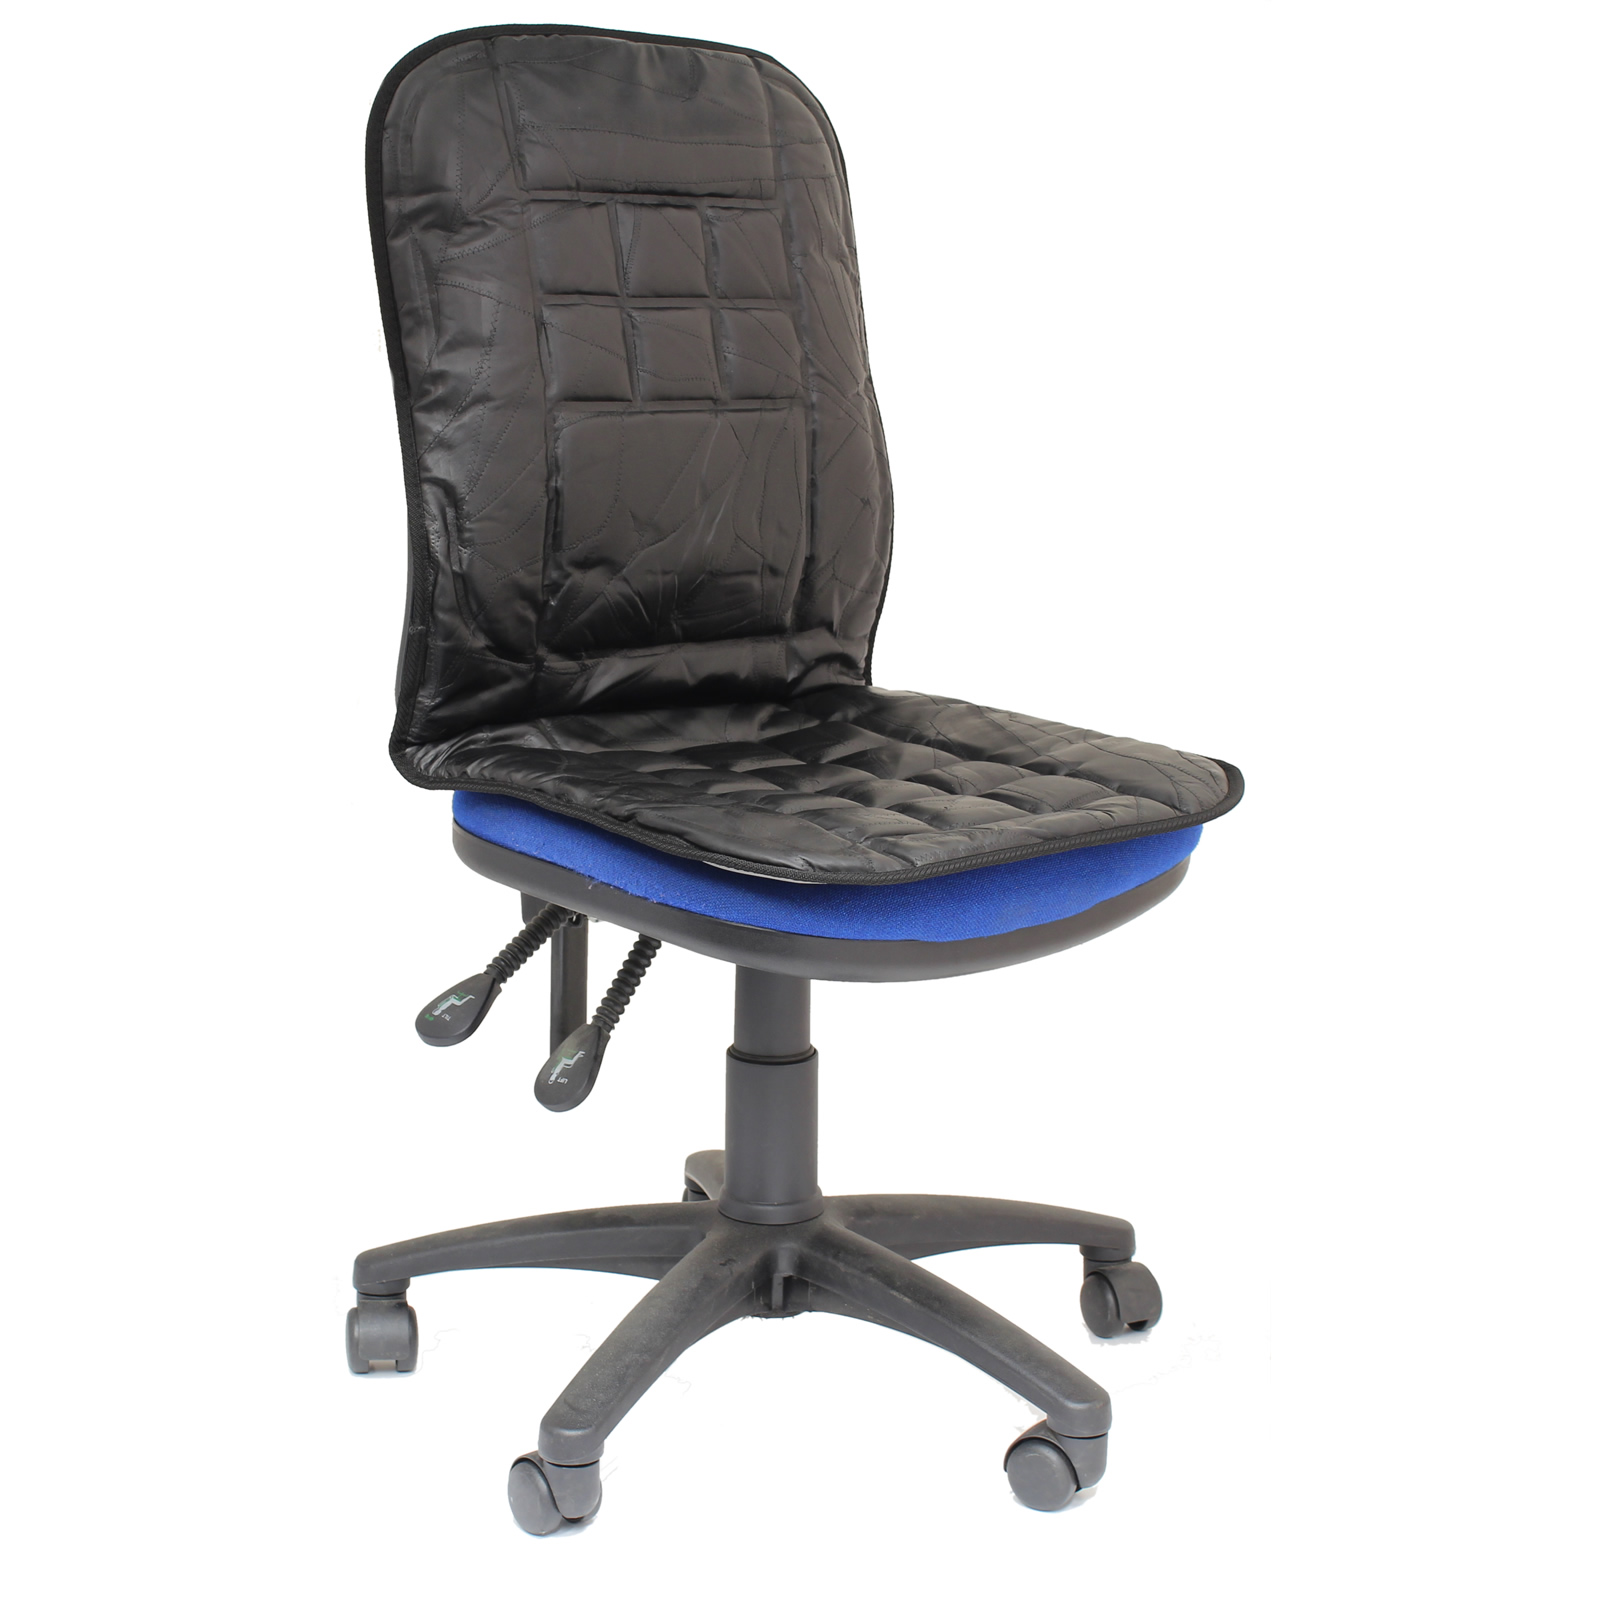 ORTHOPAEDIC LEATHER DESK OFFICE CHAIR BACK SEAT CUSHION